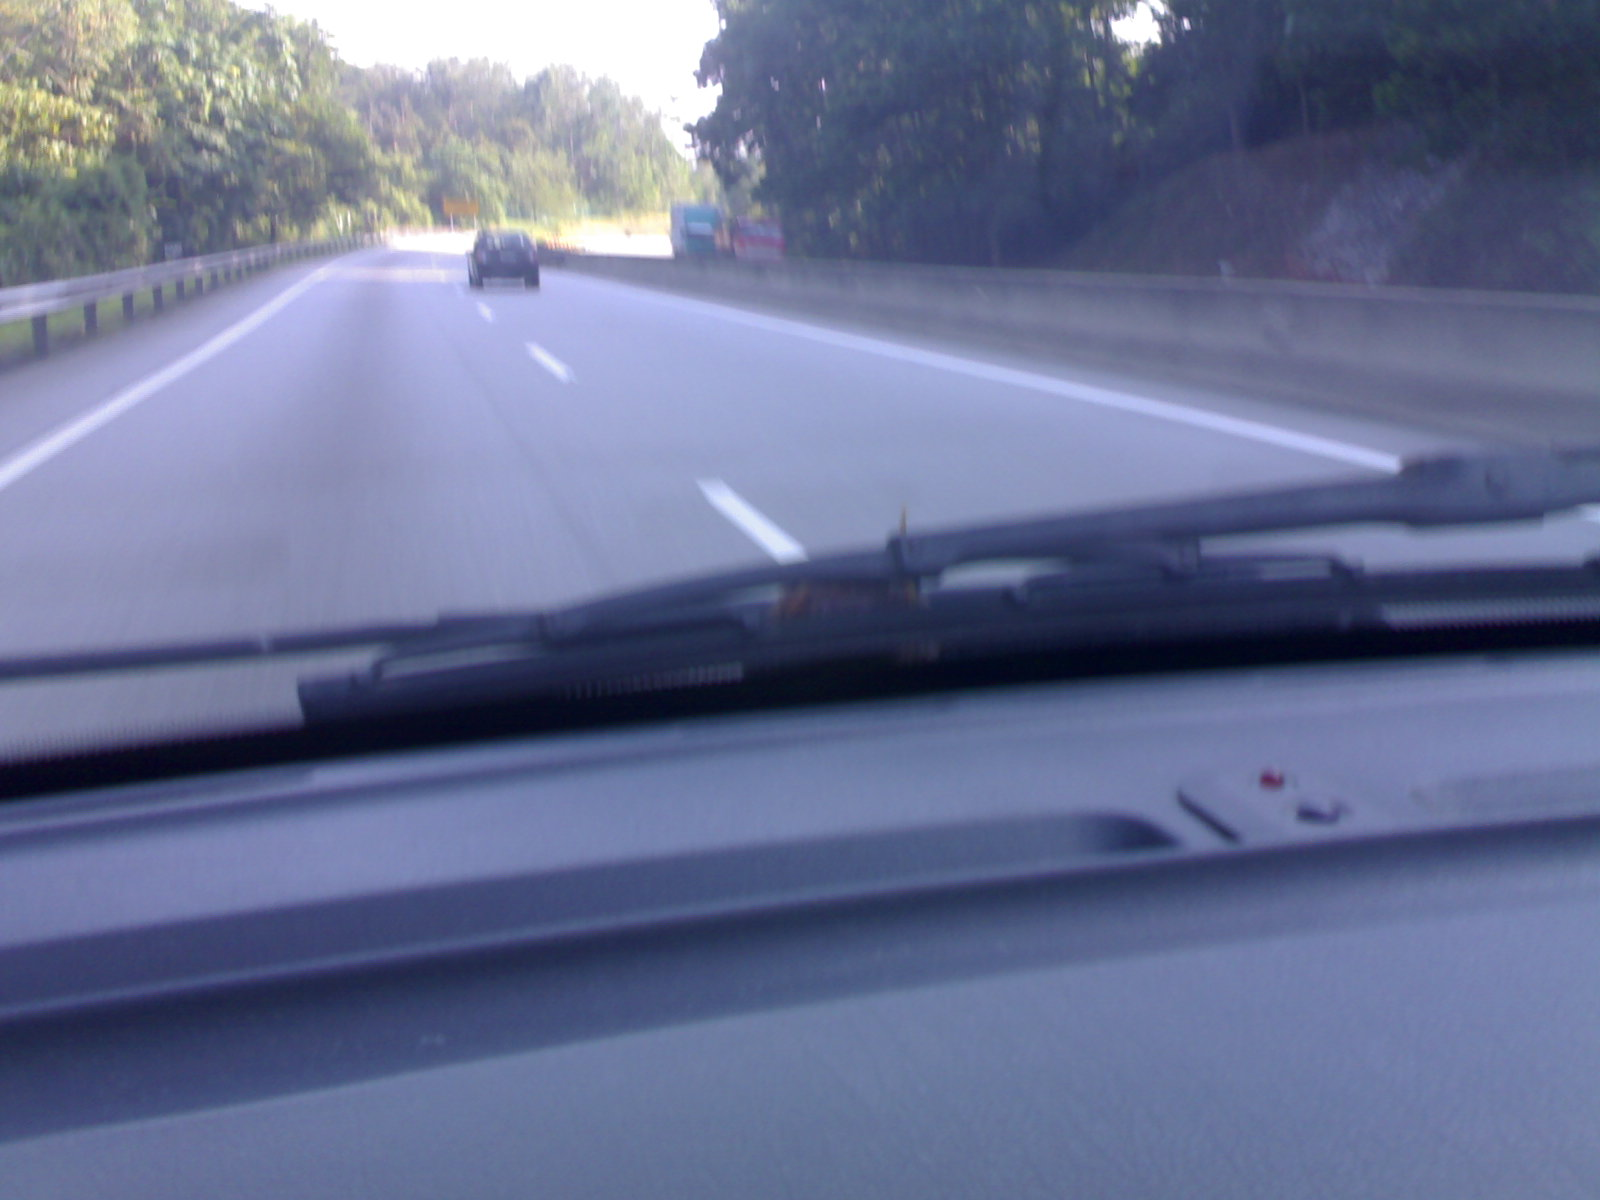 We found it on the hiding behind the wiper after passing the Gombak toll.